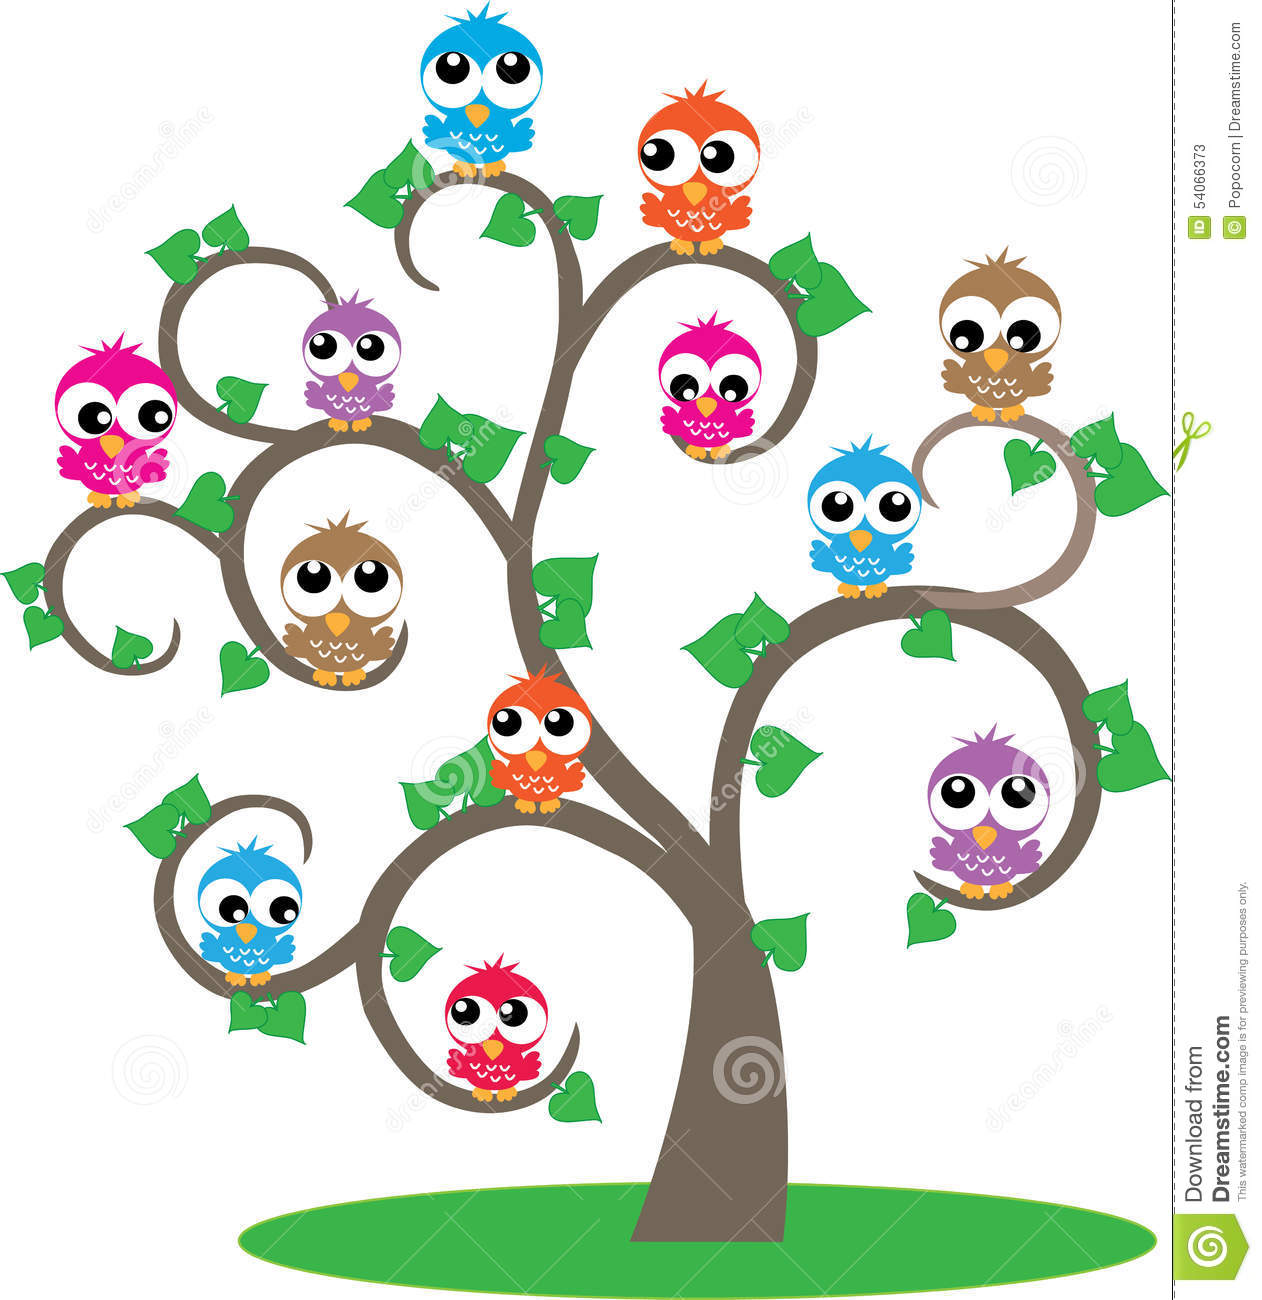 Fall Wallpaper With Owls A Tree Full Of Colorful Owls Stock Illustration Image